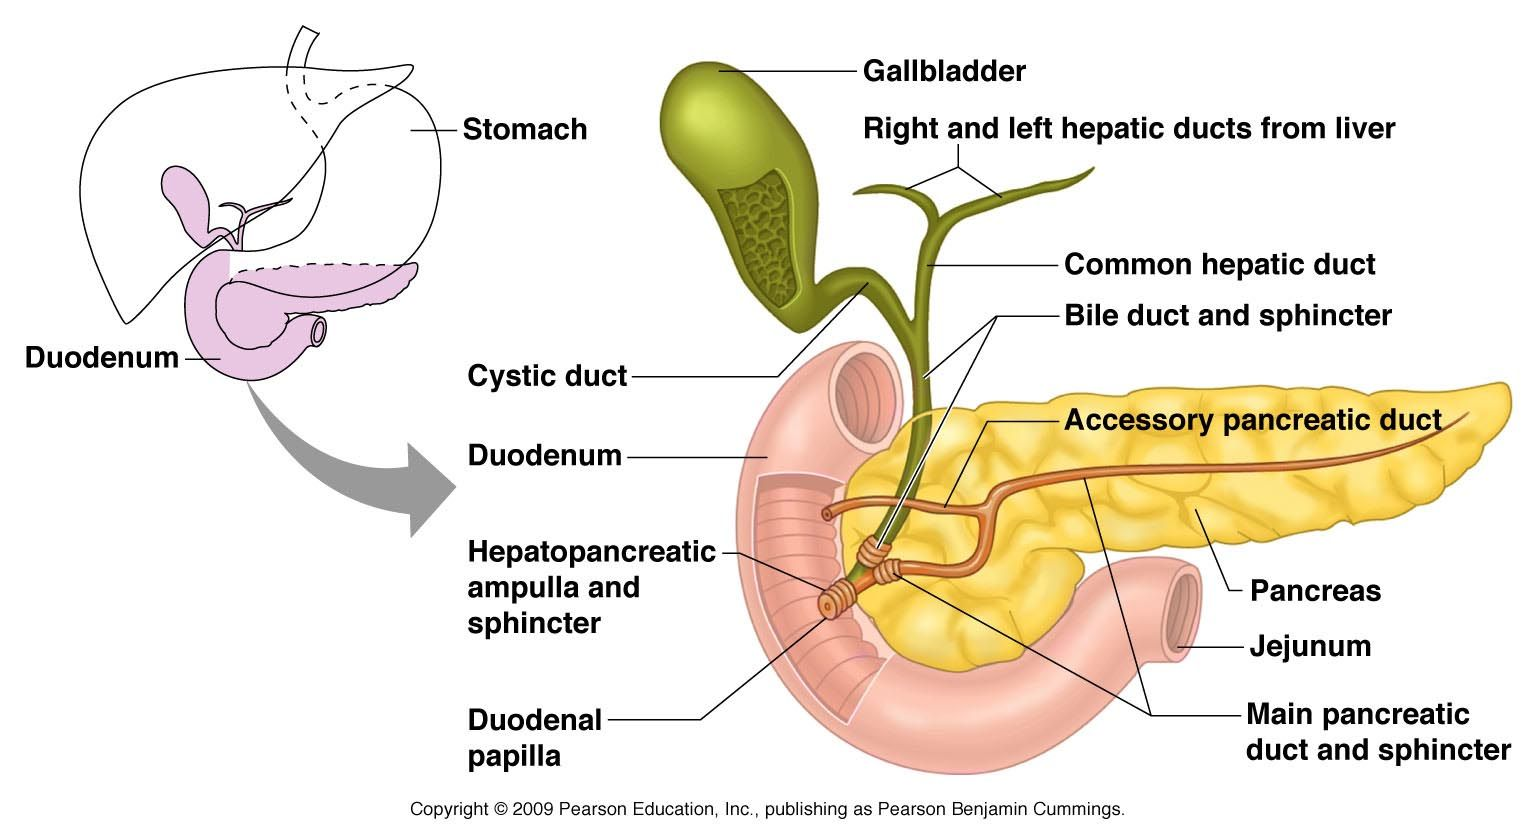 Accessory organs of the digestive tract: Pancreas, Gallbladder ...